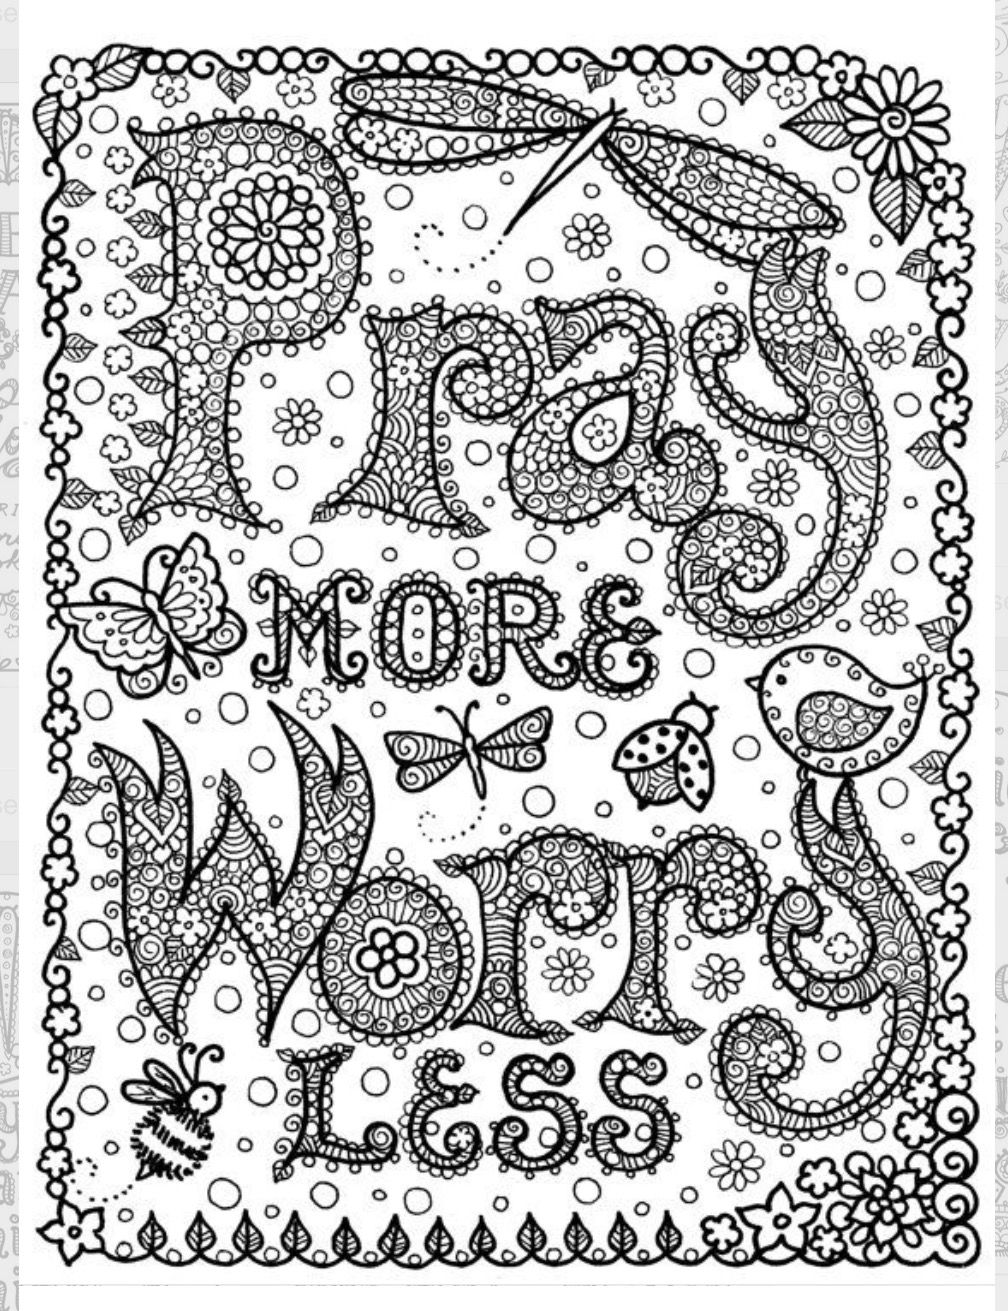 Pin by Sharon Martino on Saying Bible coloring pages